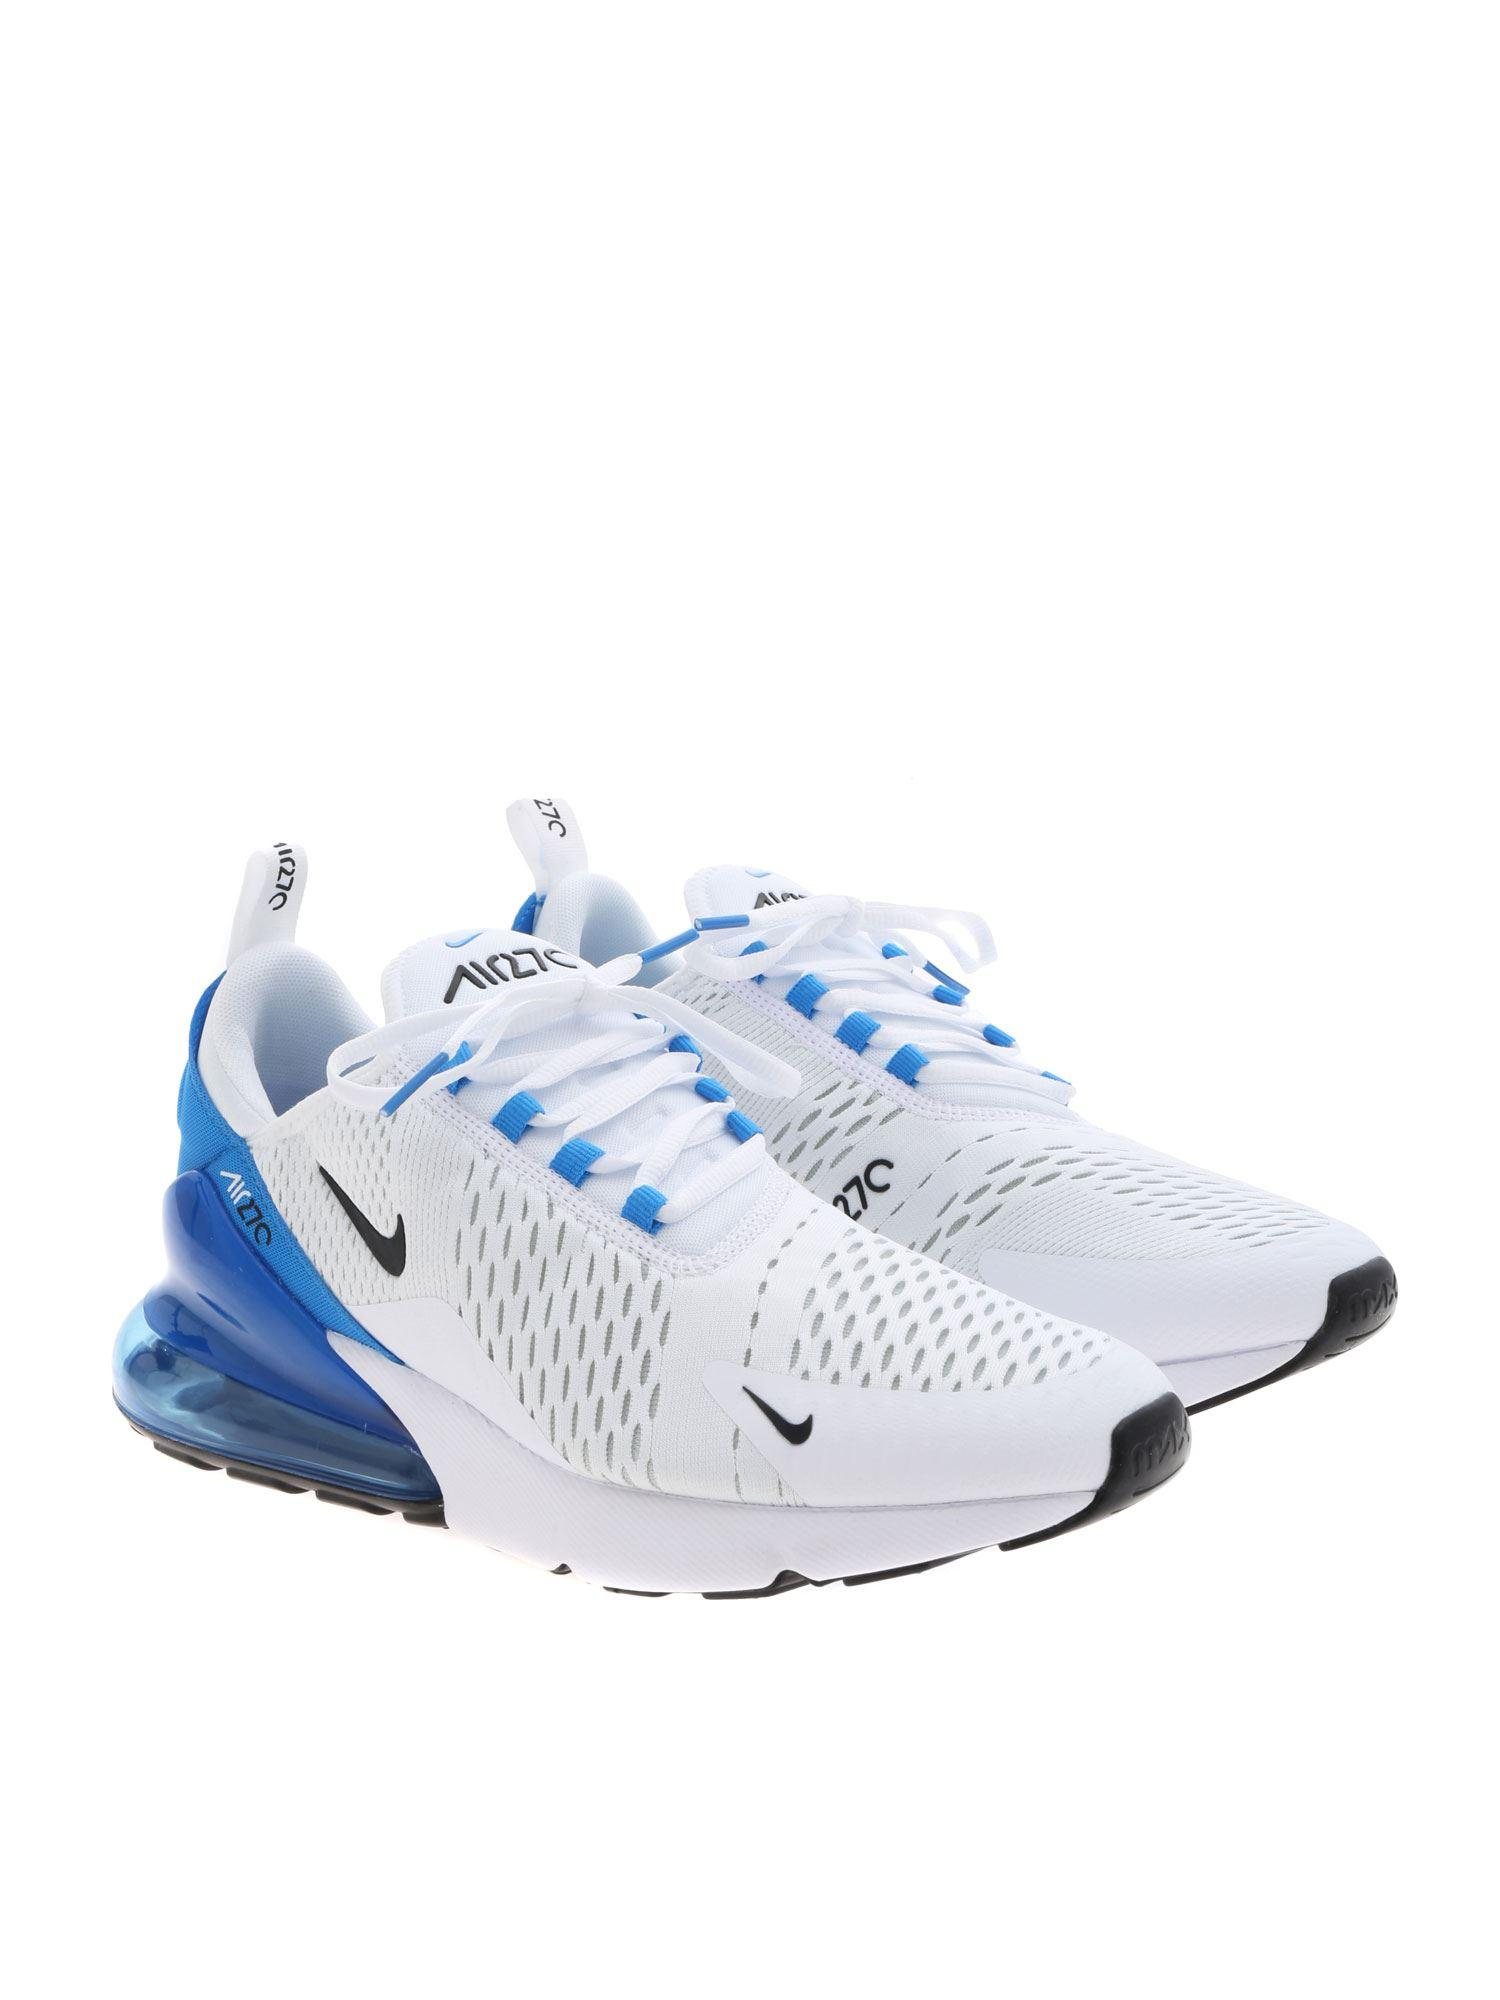 half off 0ec7c 4fdde Nike Air Max 270 Sneakers In White And Blue in White for Men - Lyst